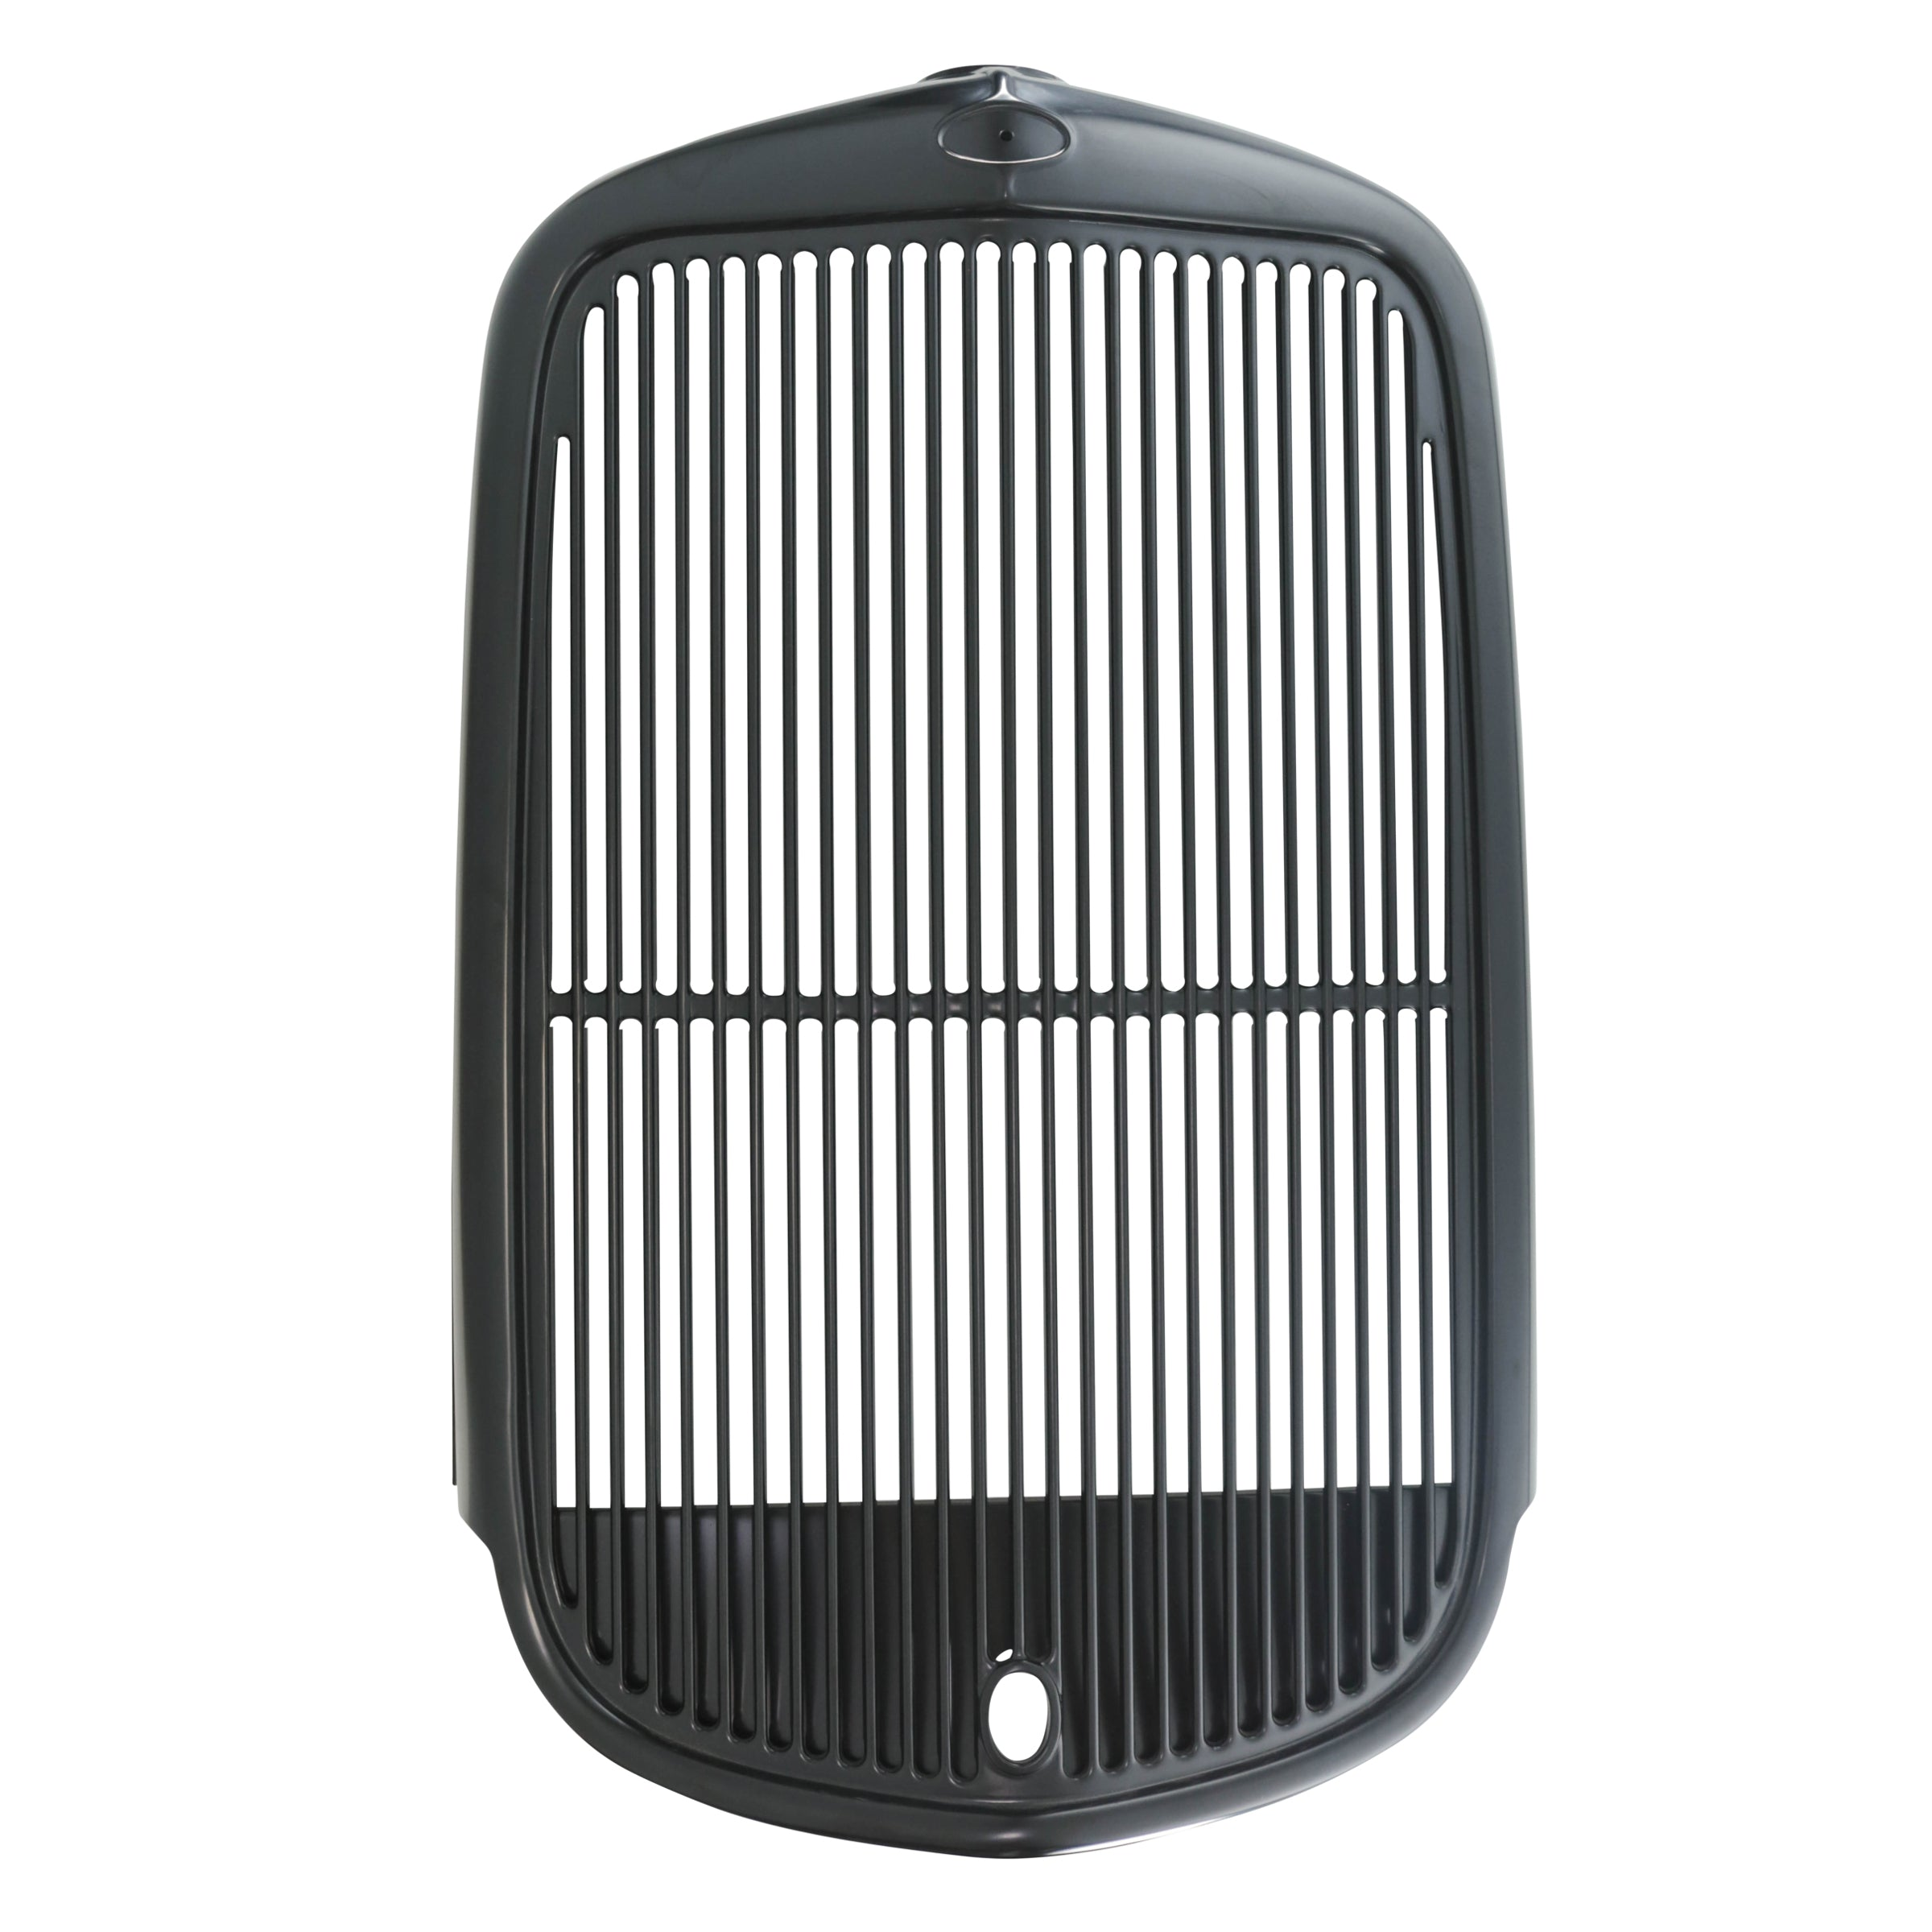 Radiator Grille Shell (Black) • 1932 Ford